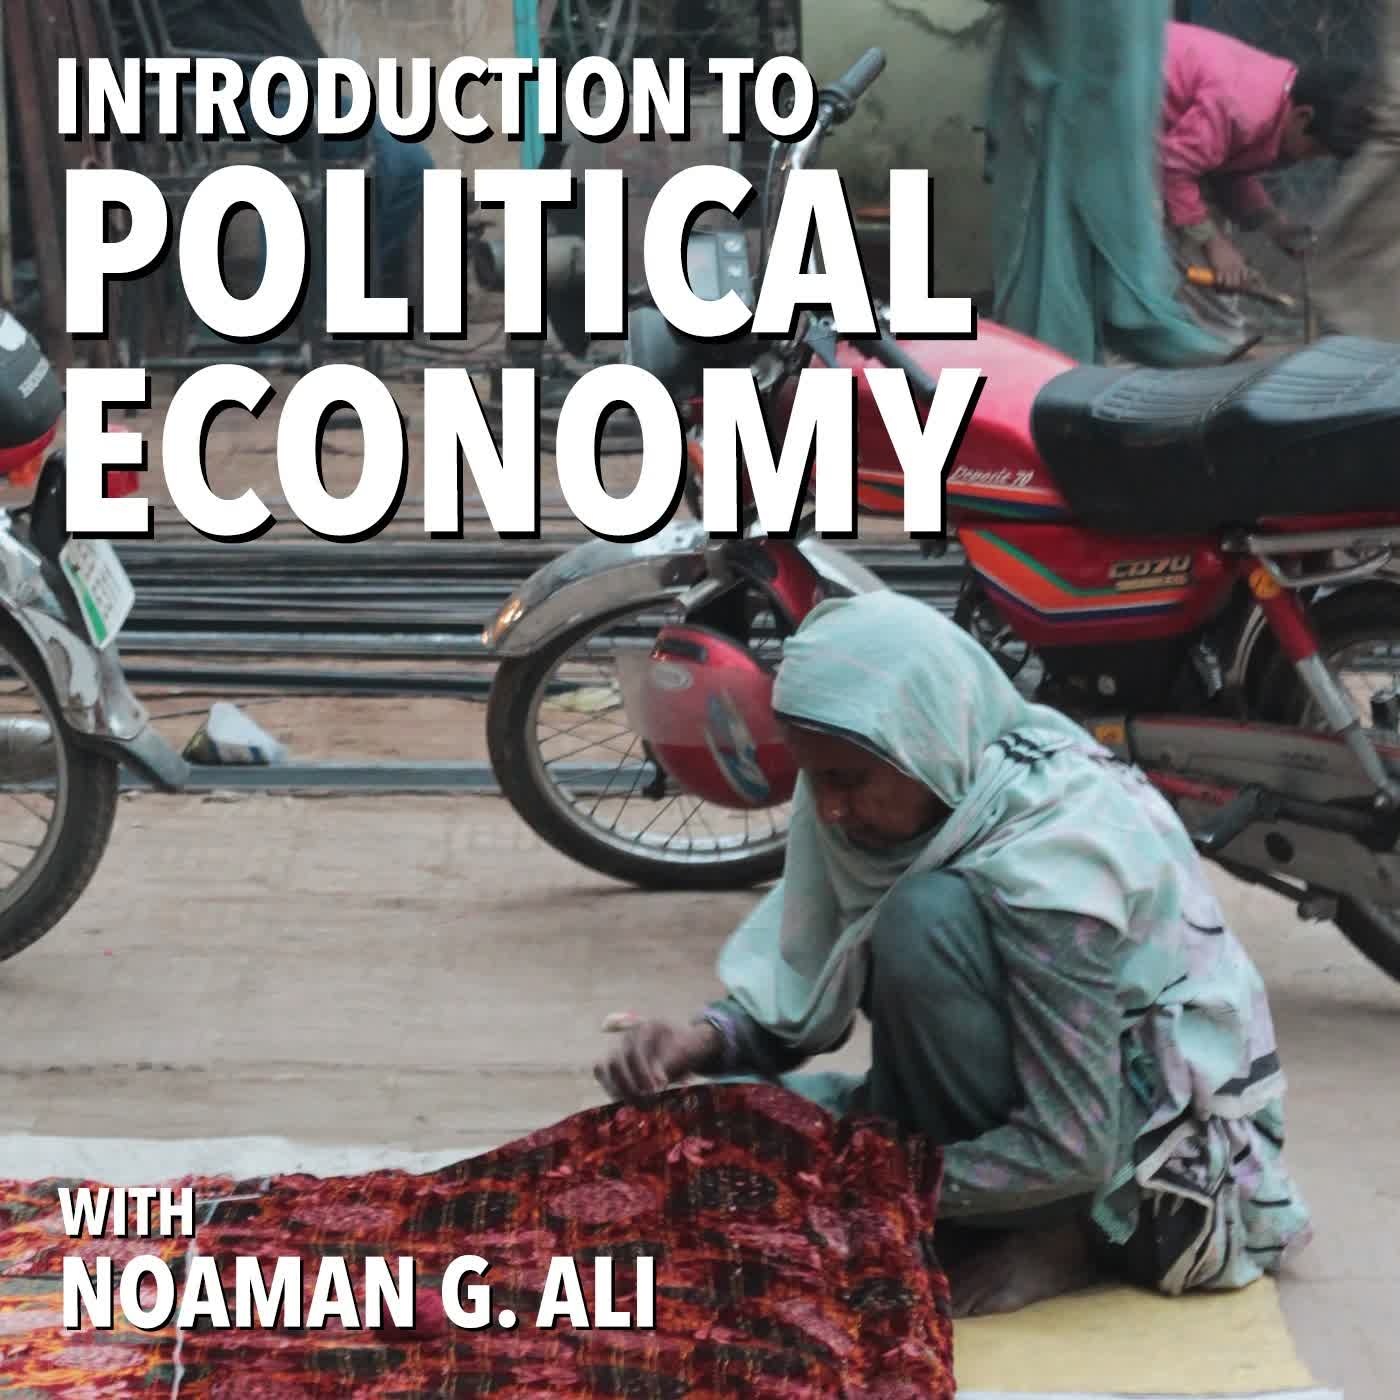 Introduction to Political Economy